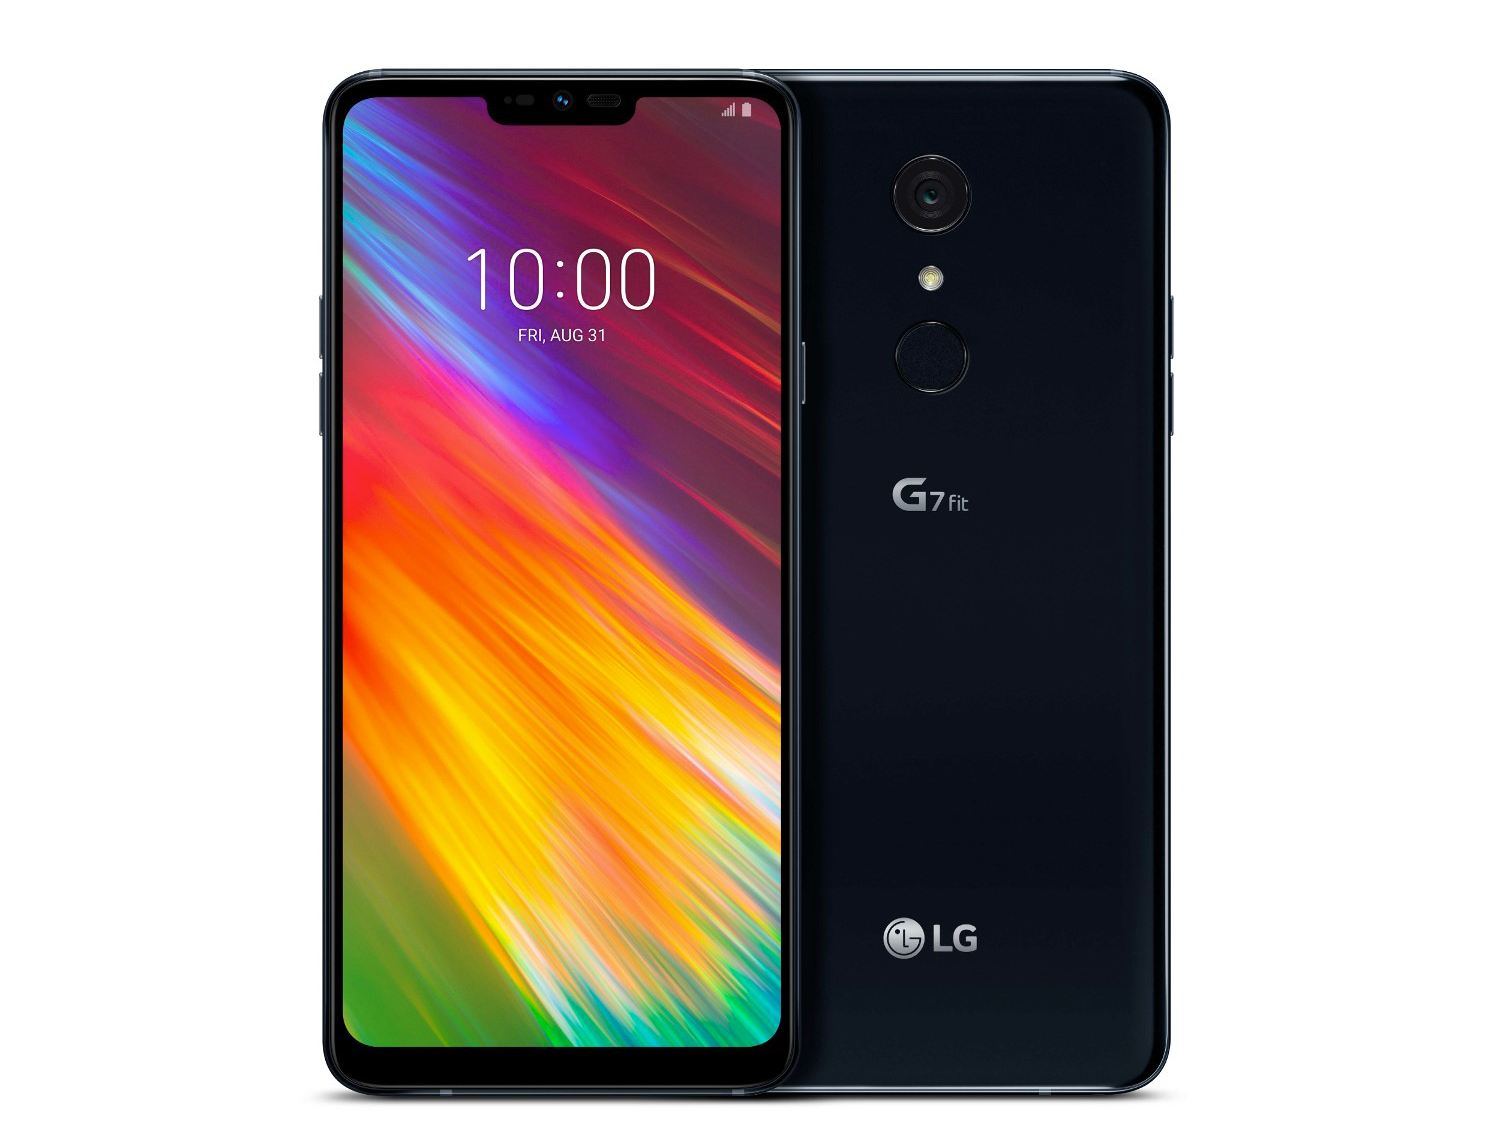 LG G7 One Android One Handset Announced Along With G7 Fit